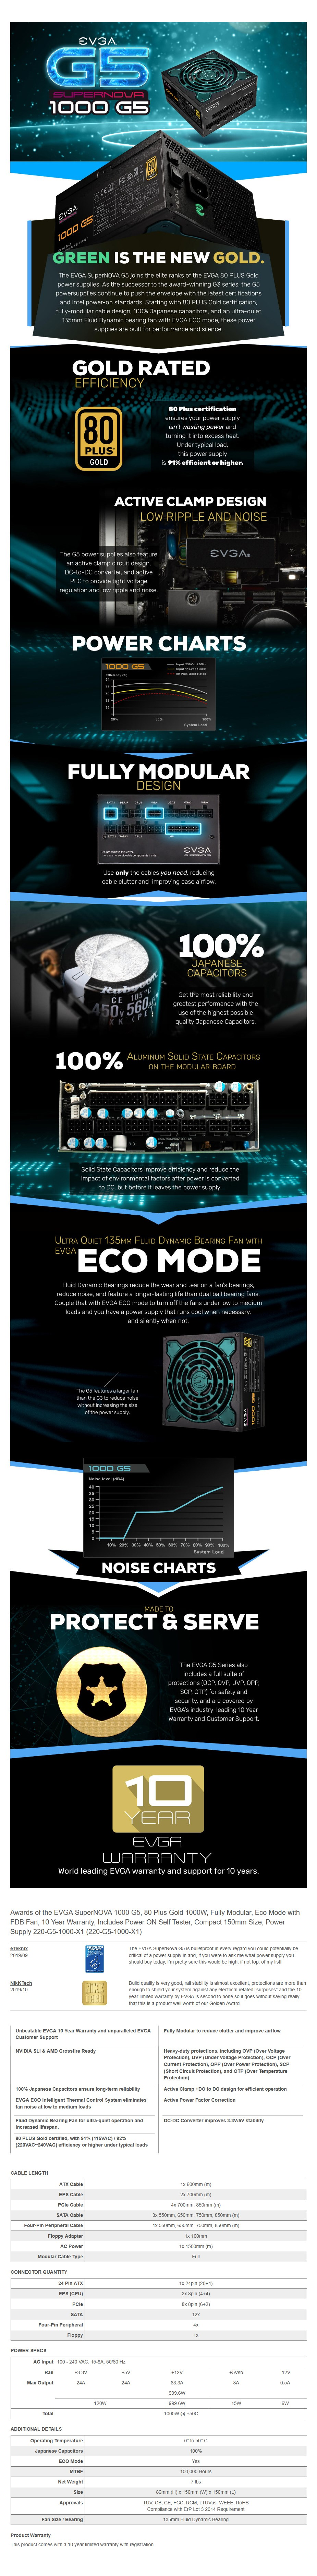 EVGA SuperNOVA 1000W G5 80 Plus Gold Fully Modular Power Supply - Desktop Overview 1